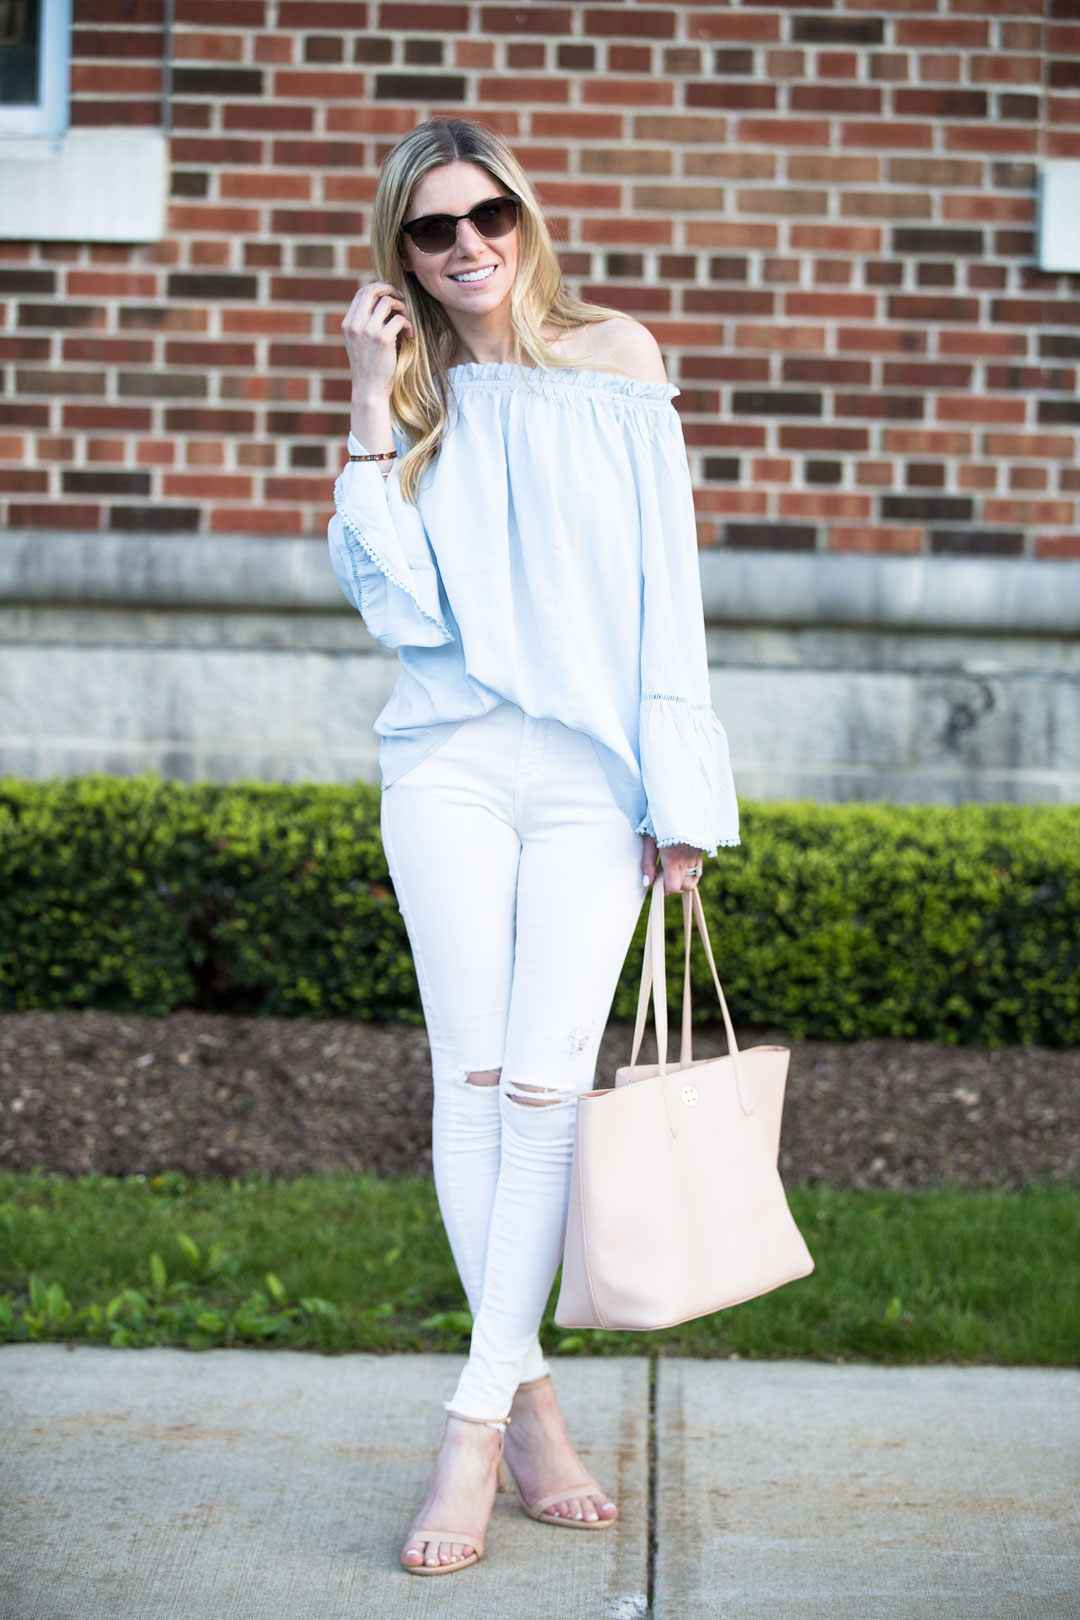 casual spring outfit look, perfect for night out